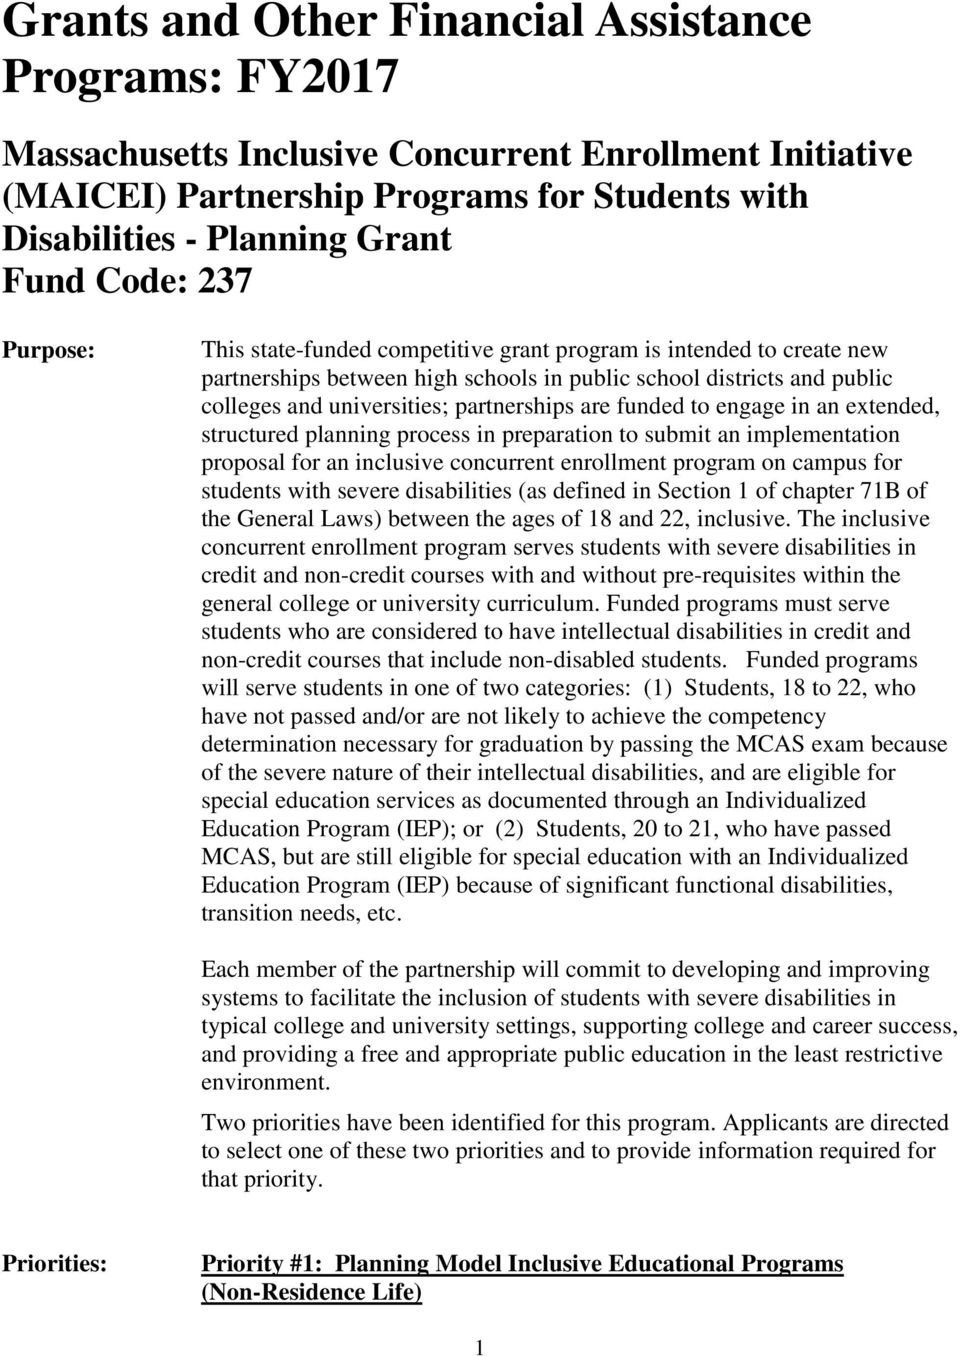 partnerships are funded to engage in an extended, structured planning process in preparation to submit an implementation proposal for an inclusive concurrent enrollment program on campus for students